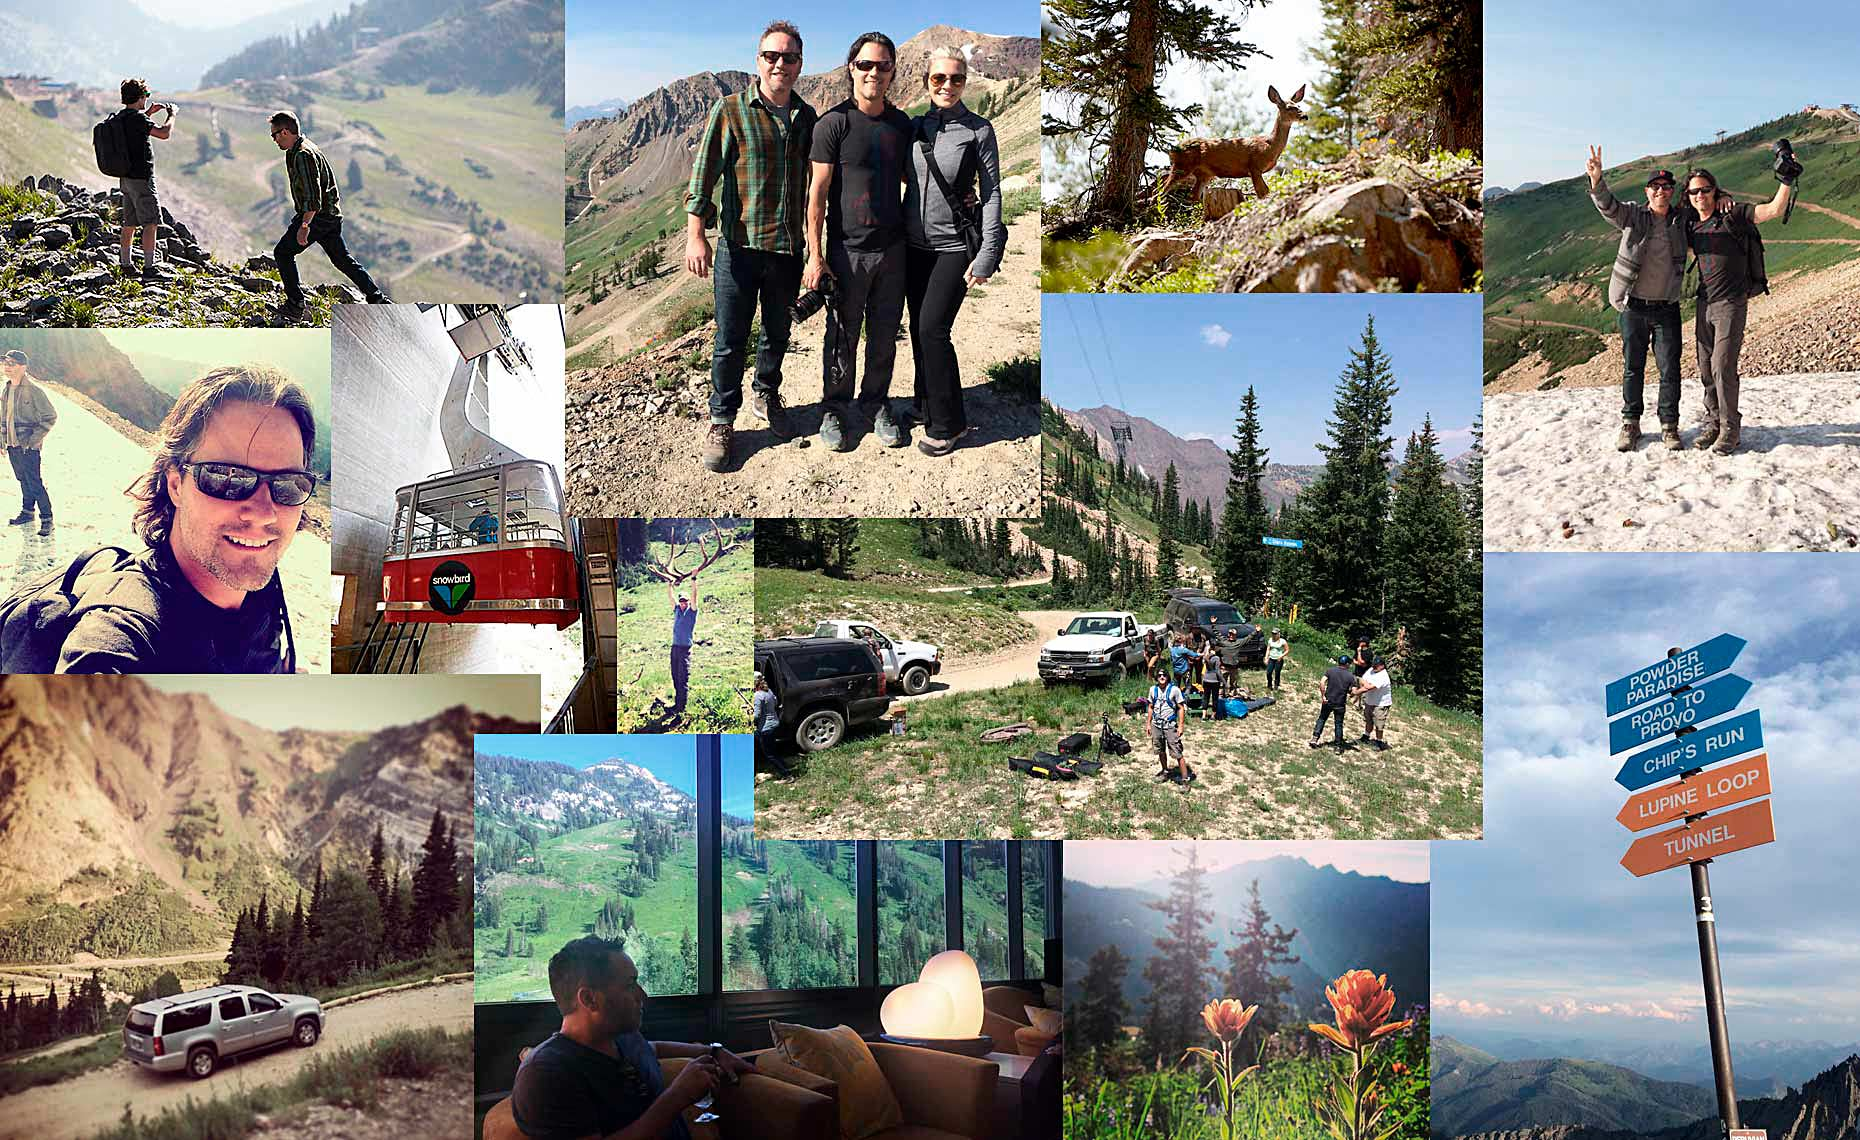 A collage of behind the scenes images from the location in Snowbird, Utah.